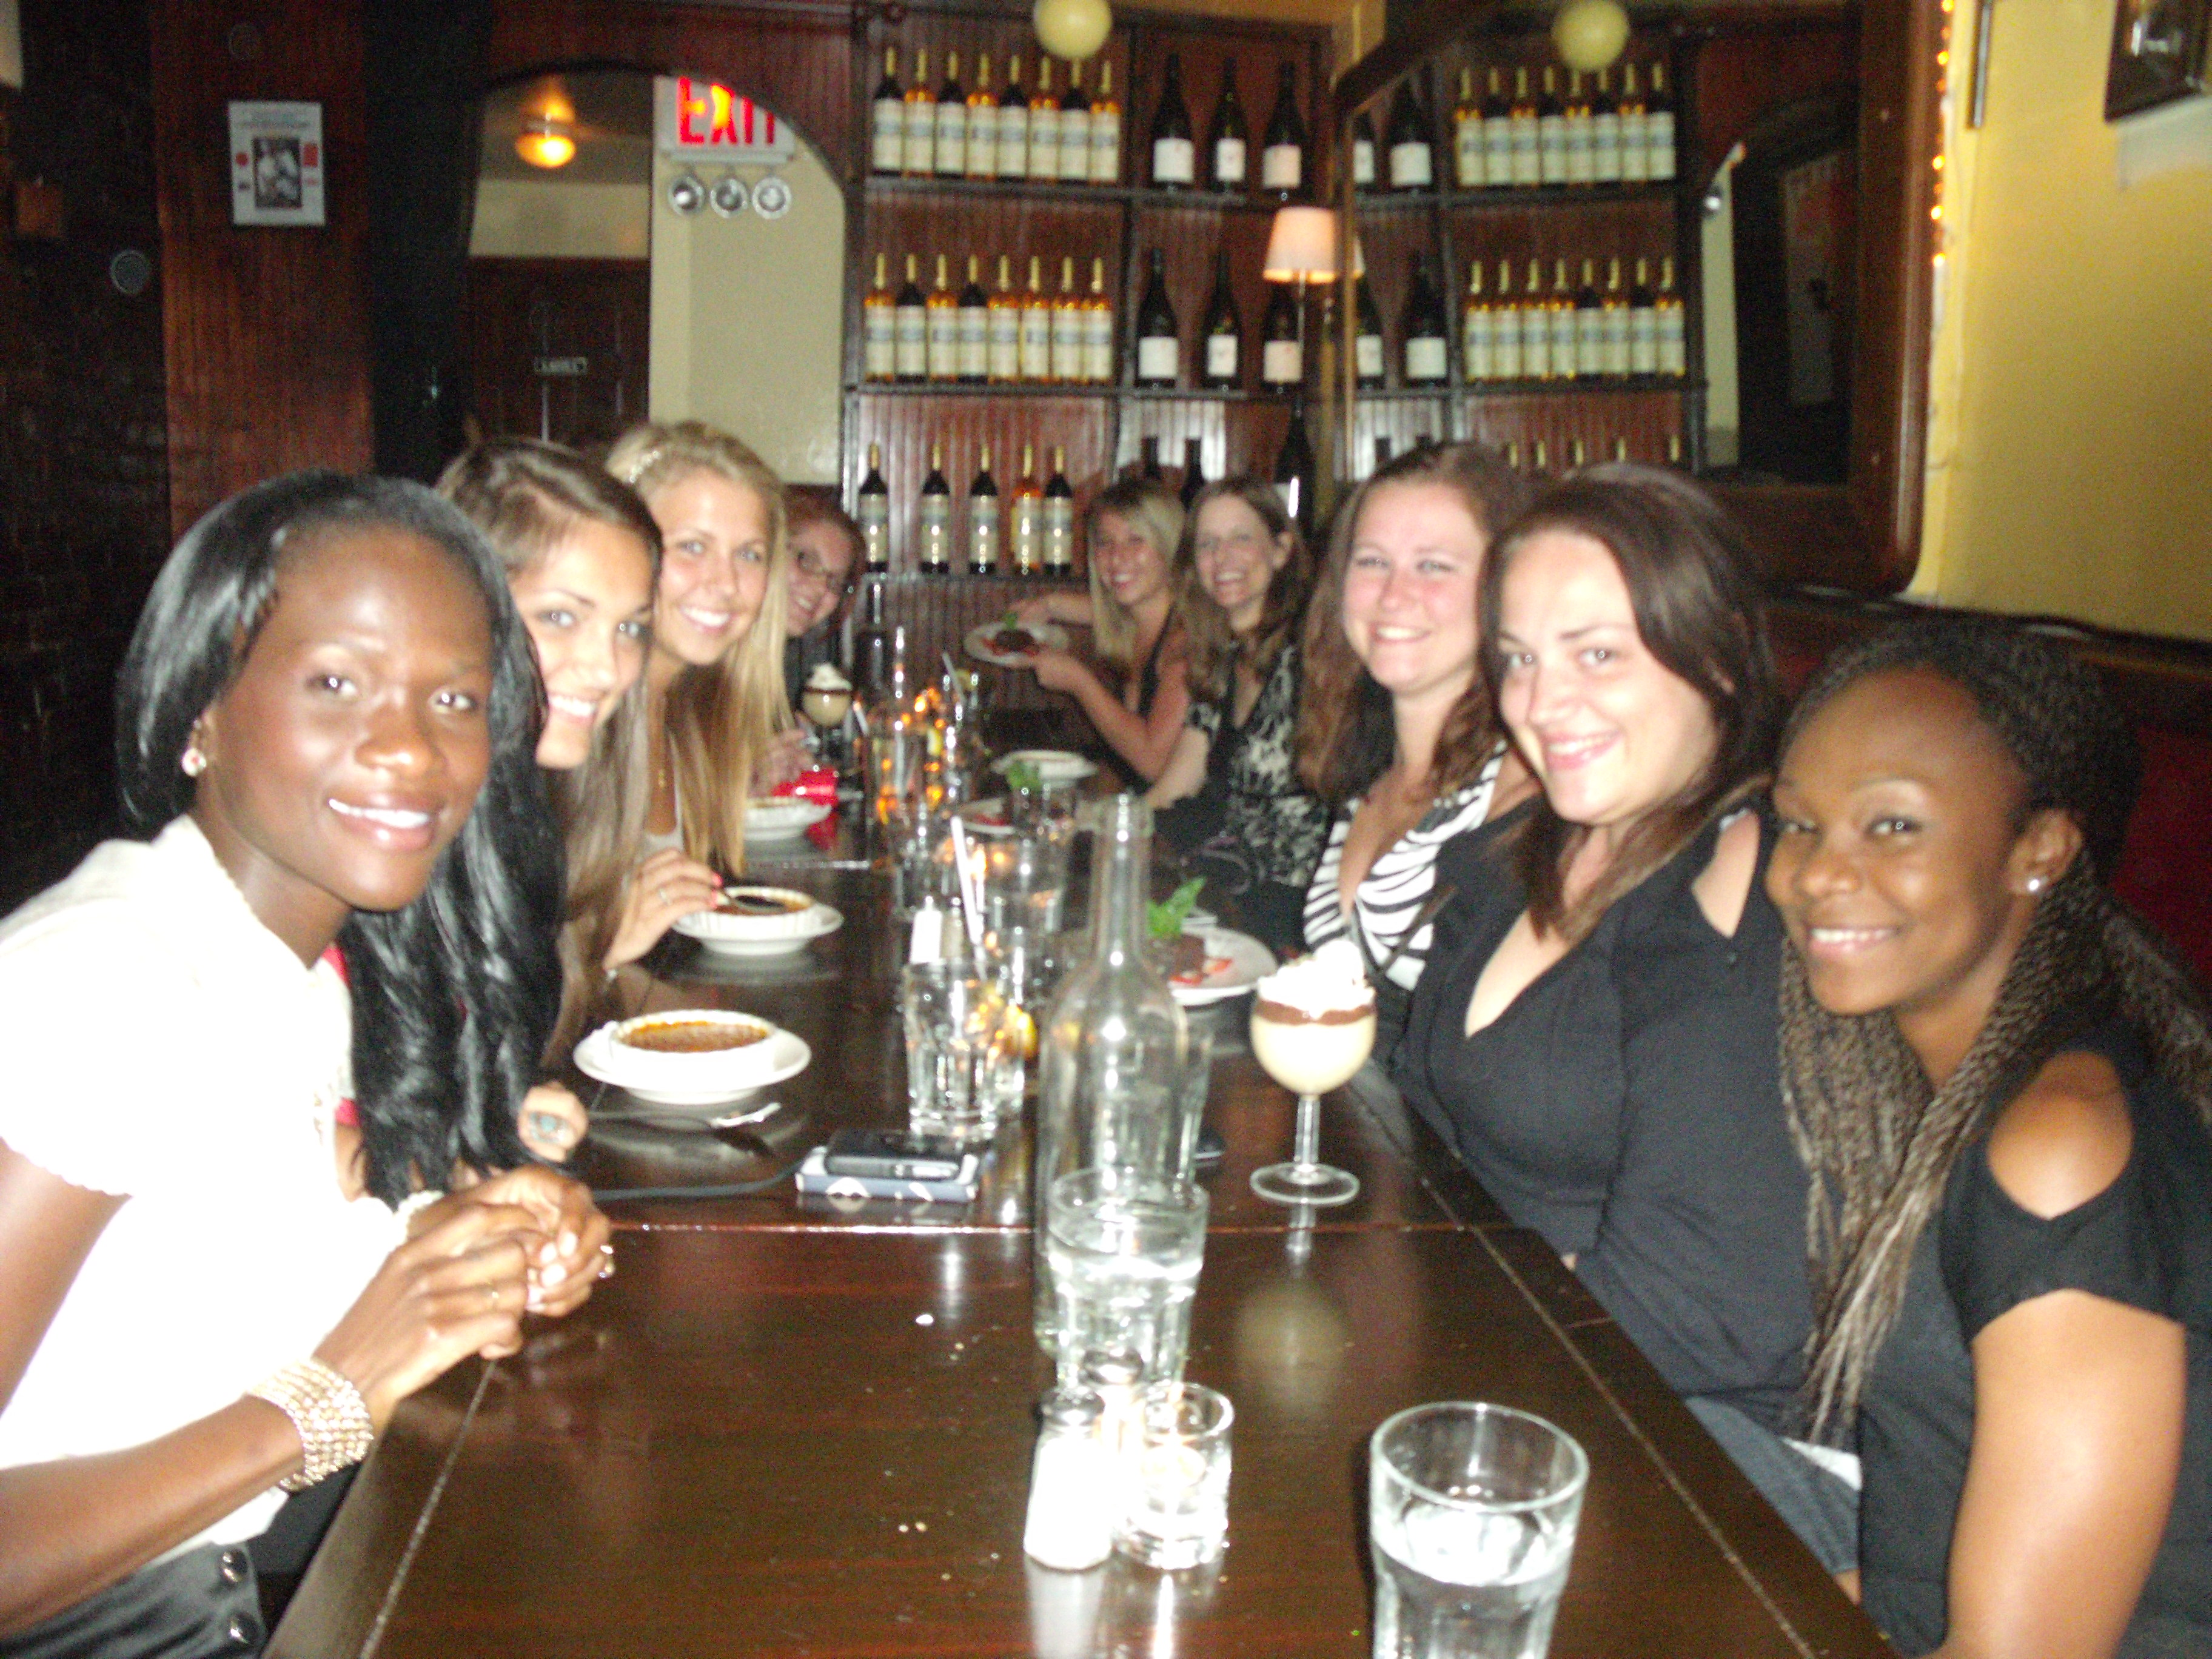 A group shot at dinner in New York.